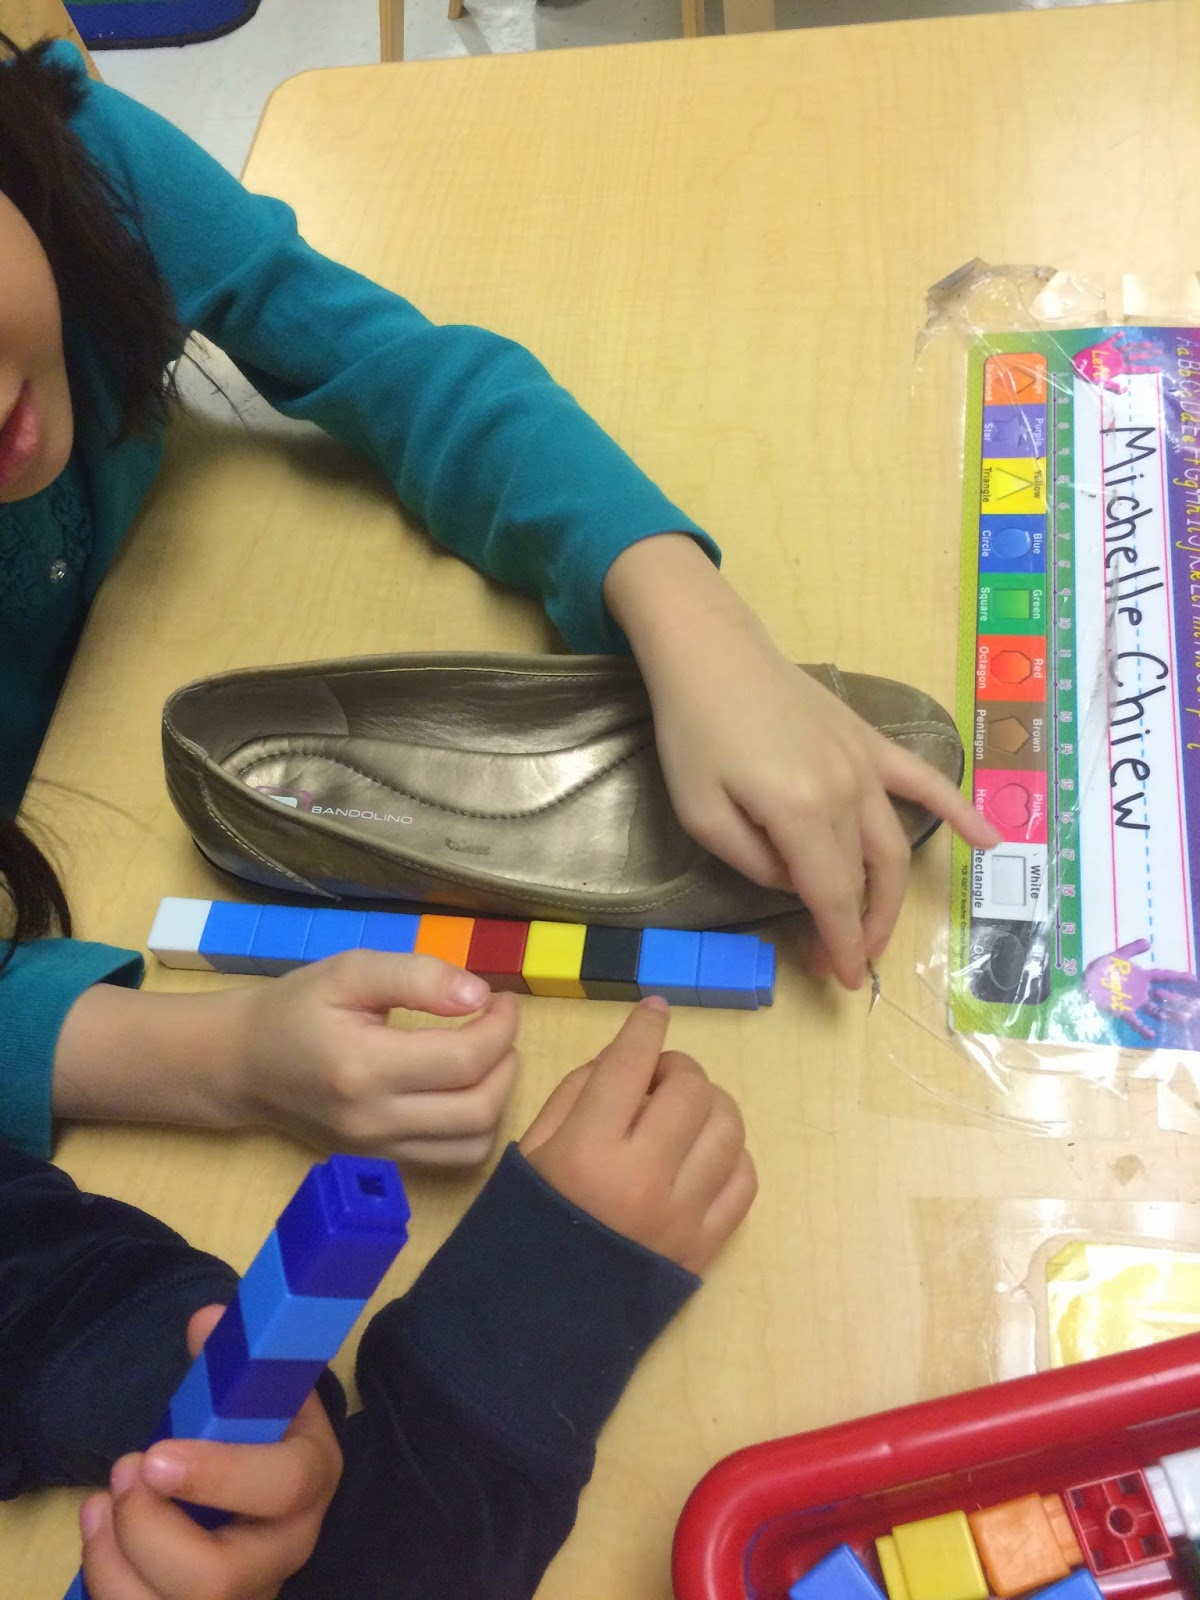 This Week We Have Begun To Explore Measurement Concepts We Are Learning  About Non Standard Units Of Measure  Using Cubes And Other Objects To  Measure And